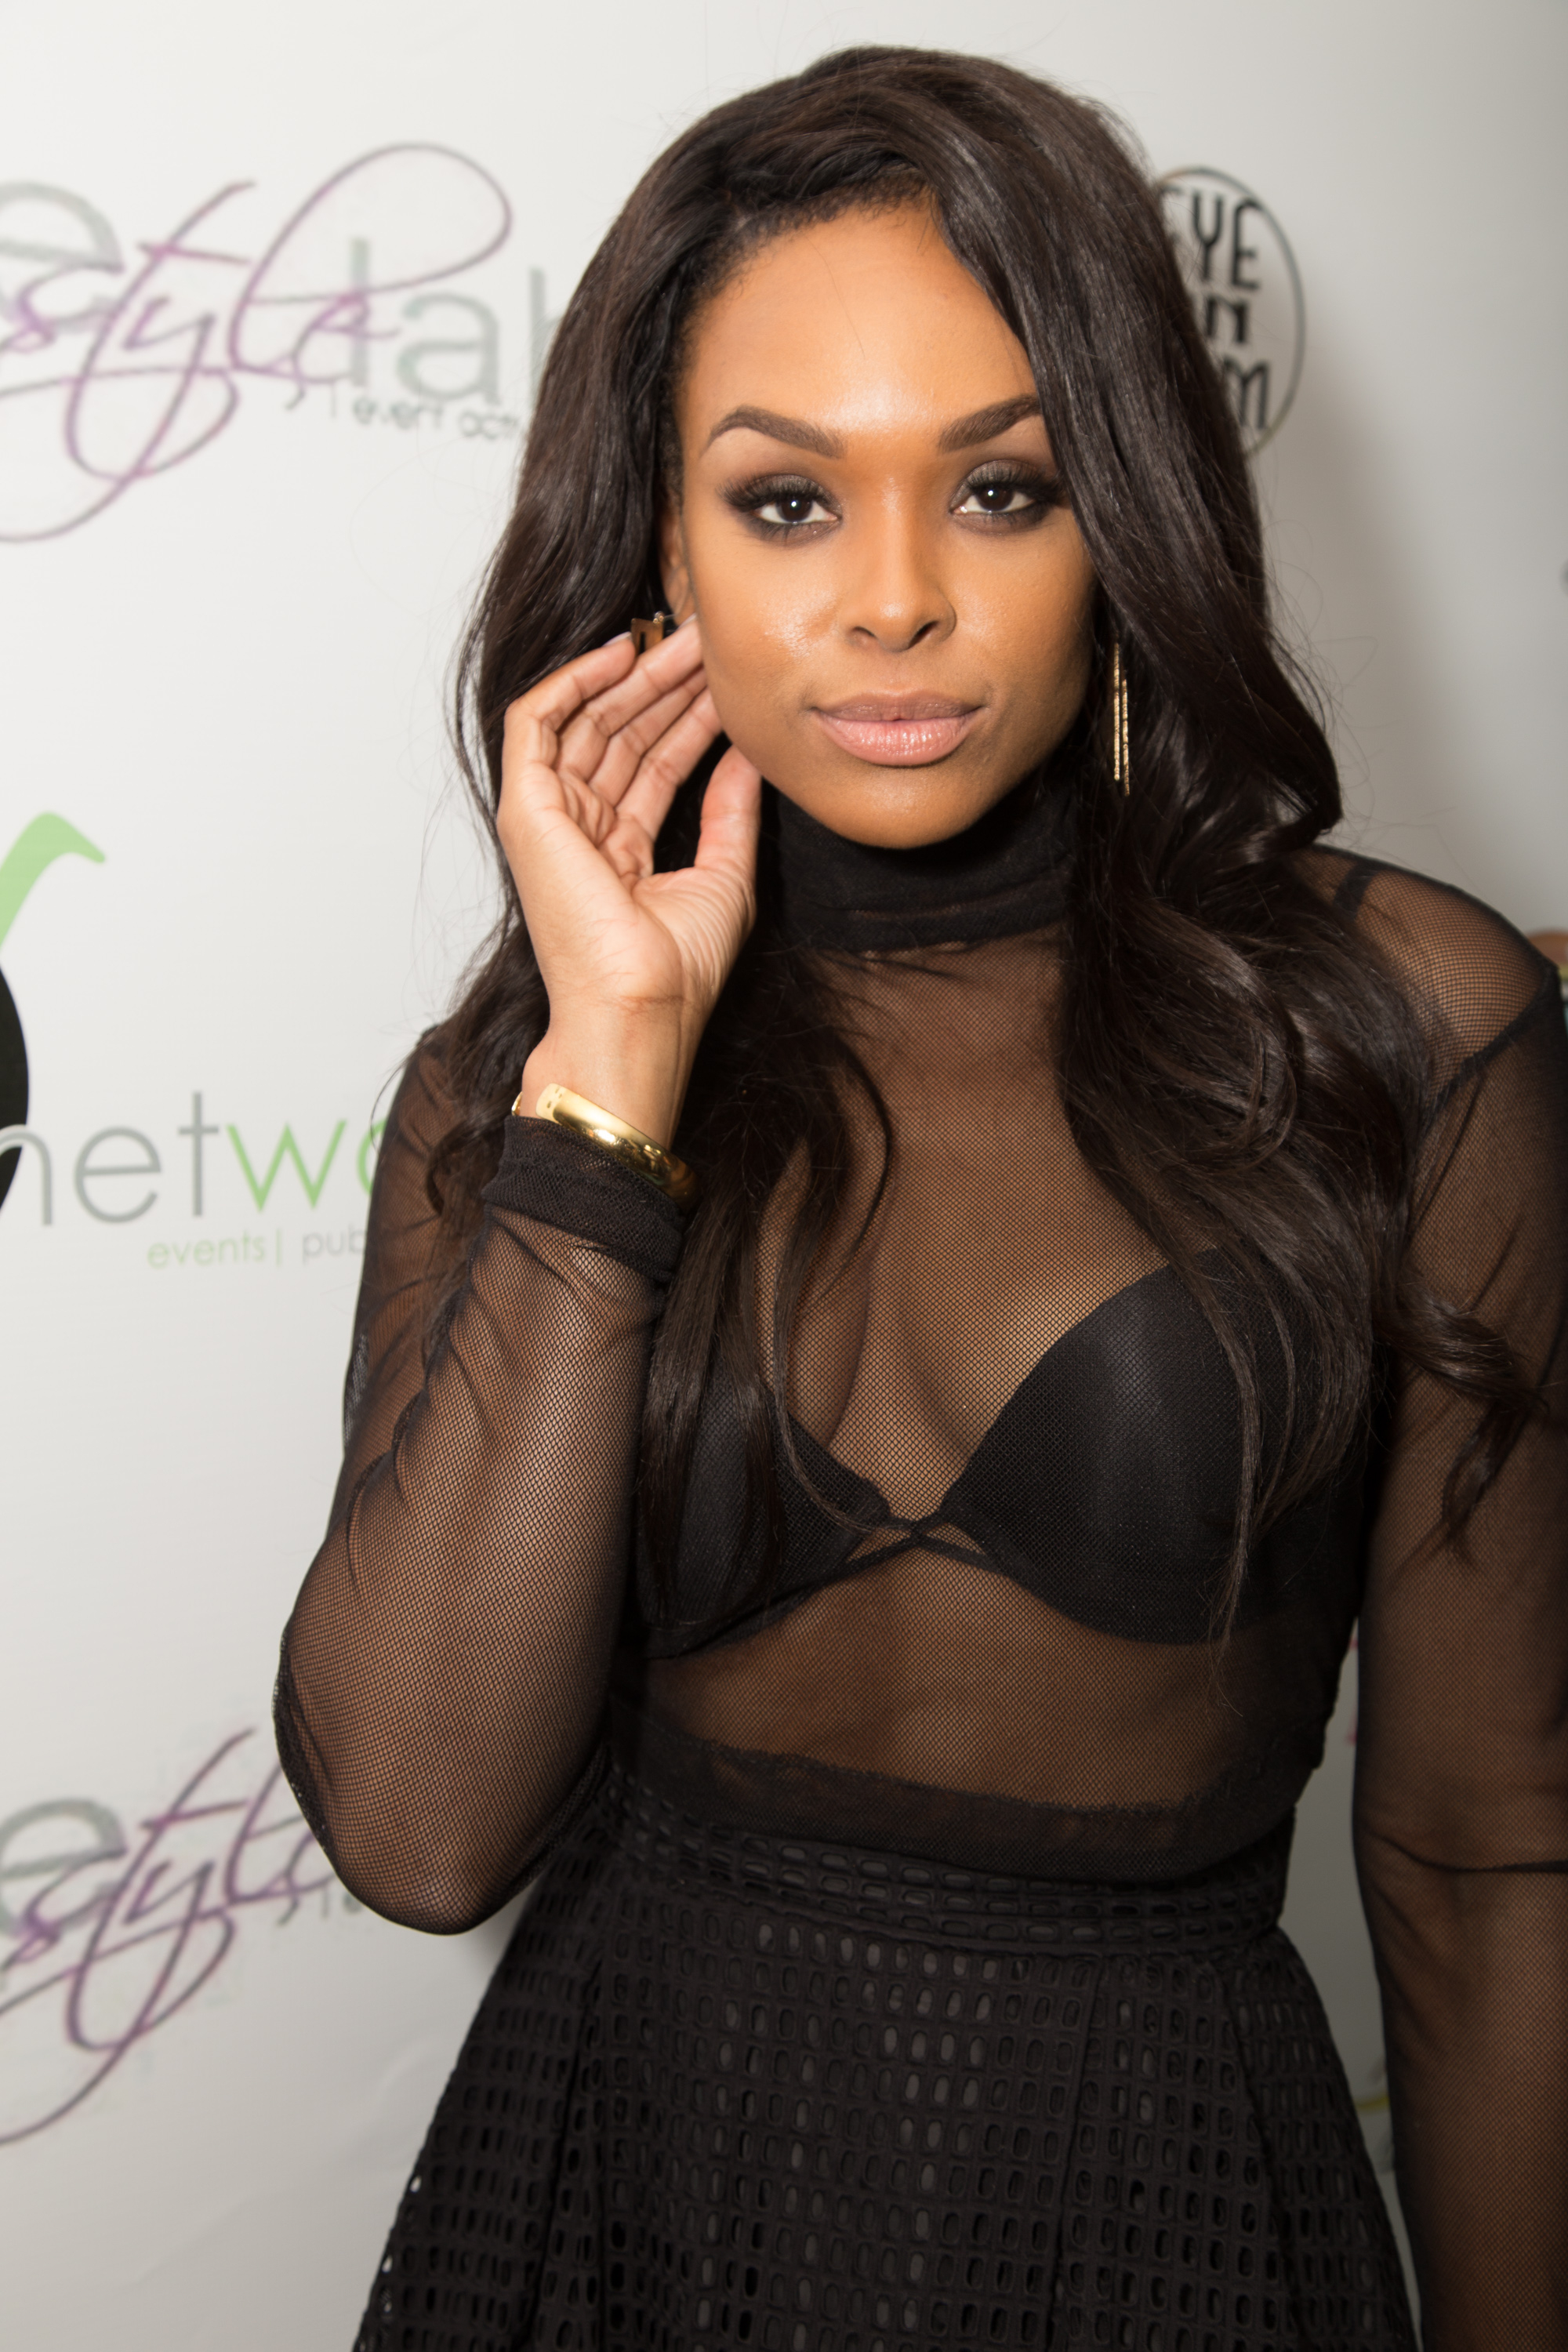 "06/27/2015 - Demetria Mckinney - 3rd Annual ""Eye on Glam"" Beauty Brunch - The Andaz Hotel - West Hollywood, CA, USA - Keywords: LA Hair, WE TV, BET weekend, Cougar Town,  Mona Scott, Love and Hip hop, Notorious, Biggie, faith evans, LA Hair, The have and the have nots, Tyler perry, basketball wives, real housewives of atlanta, Tamar and Vince Orientation: Portrait Face Count: 1 - False - Photo Credit: CelebLens / PRPhotos.com - Contact (1-866-551-7827) - Portrait Face Count: 1"